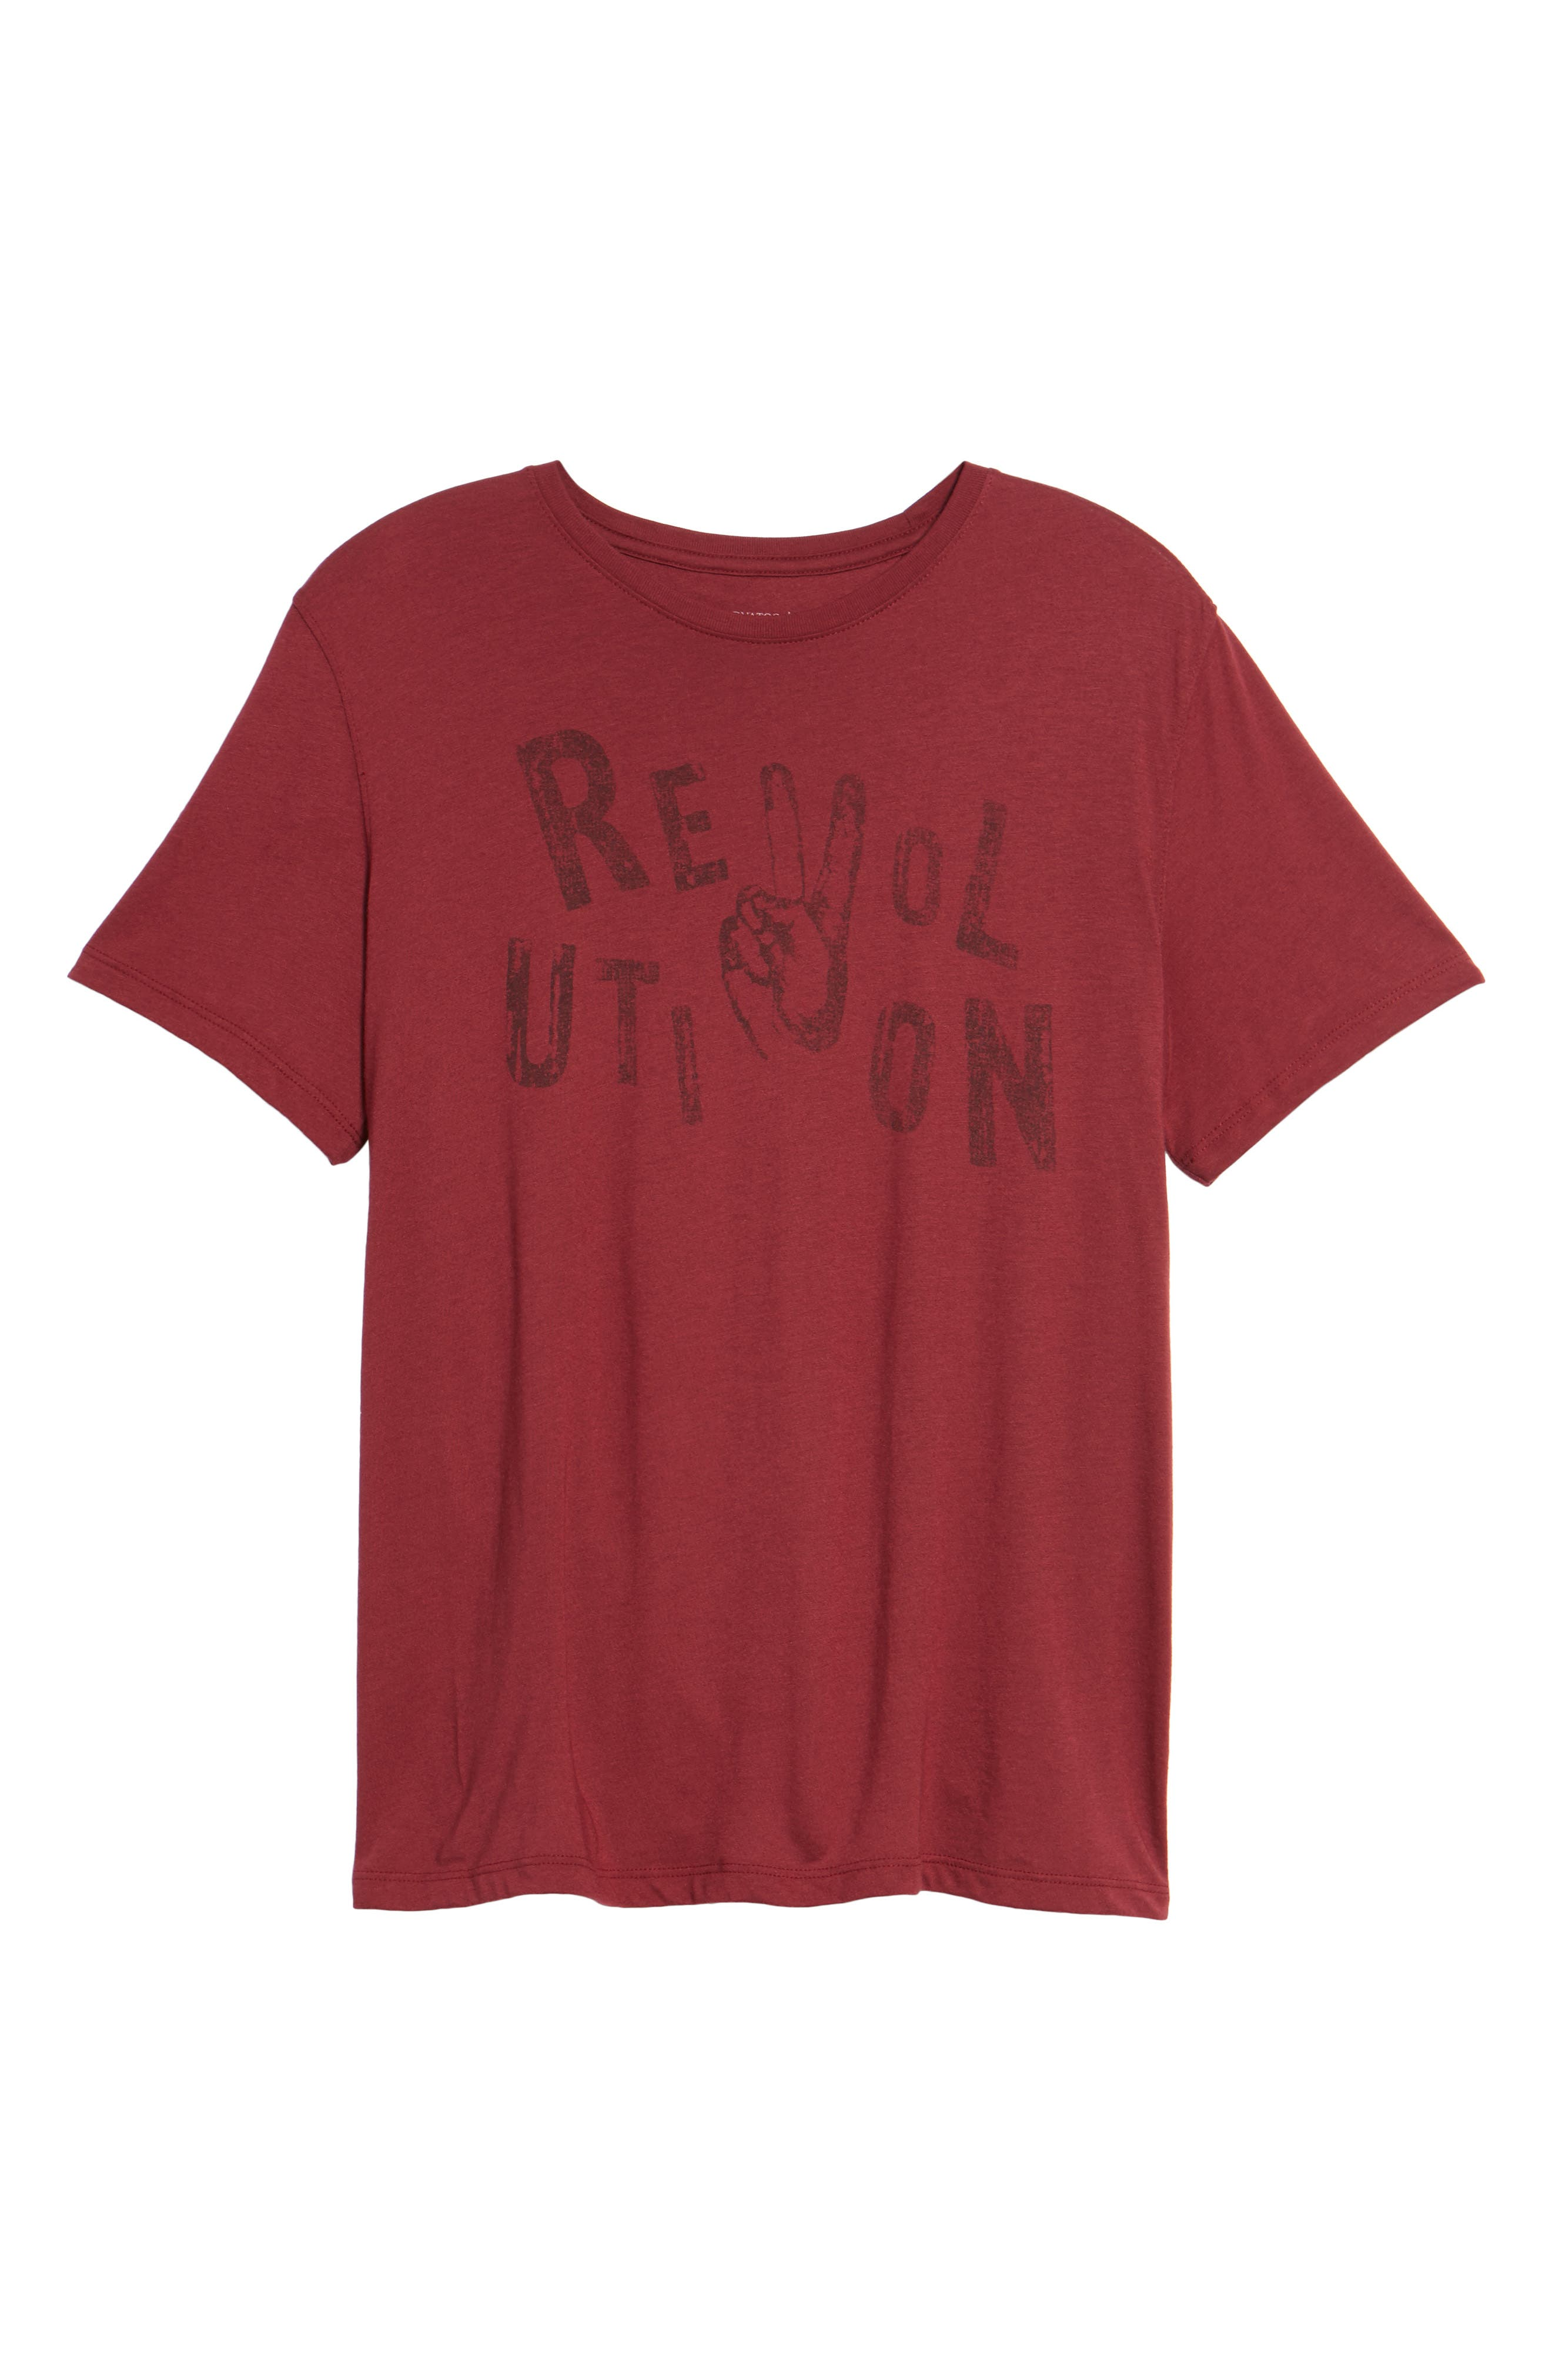 Revolution Graphic T-Shirt,                             Alternate thumbnail 6, color,                             Oxblood